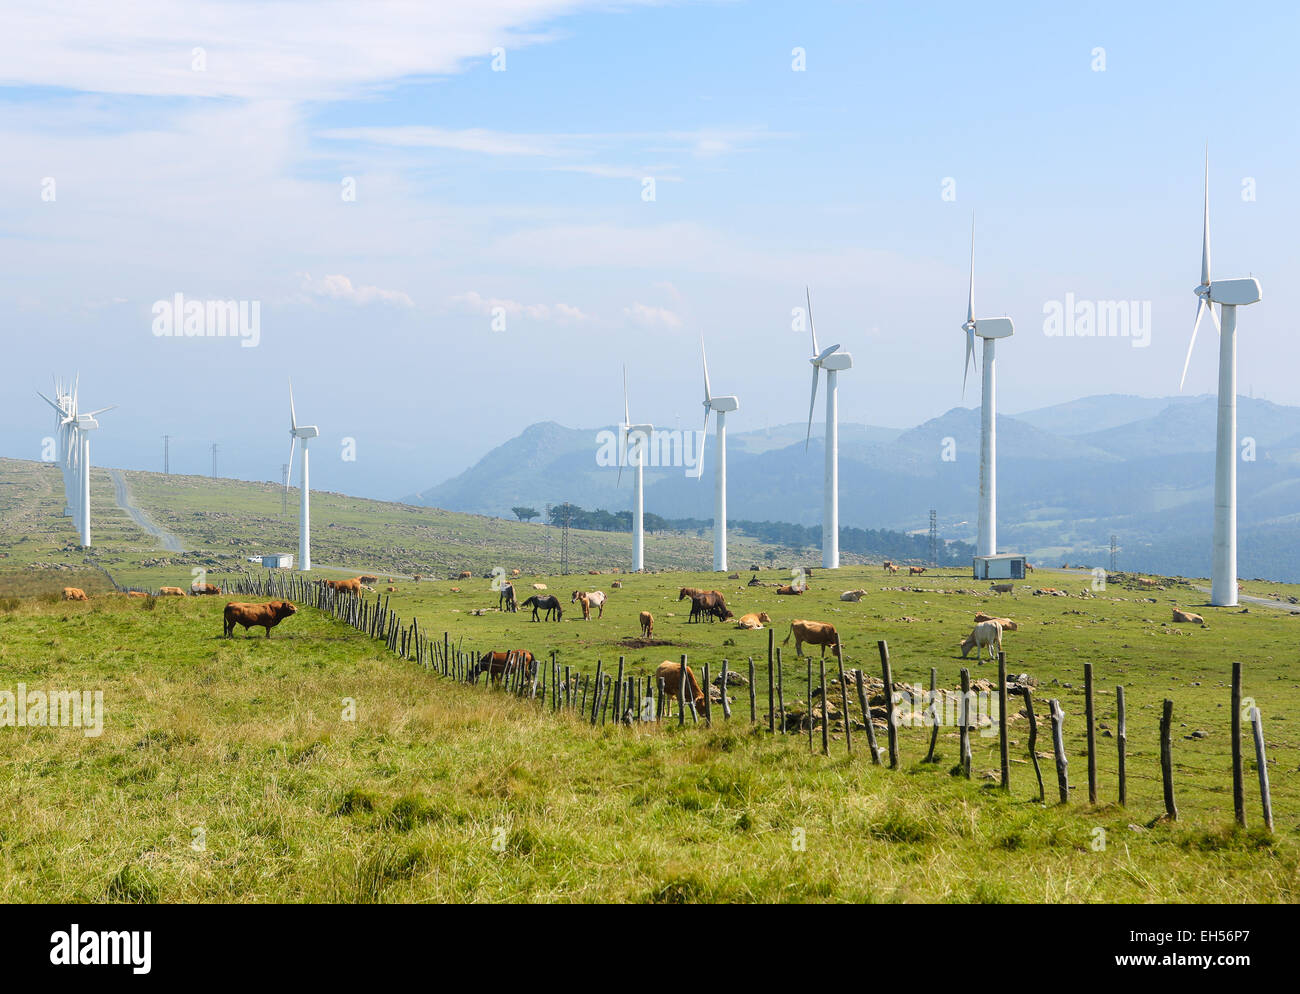 Onshore wind turbine farm in the Northern part of Galicia, Spain. - Stock Image